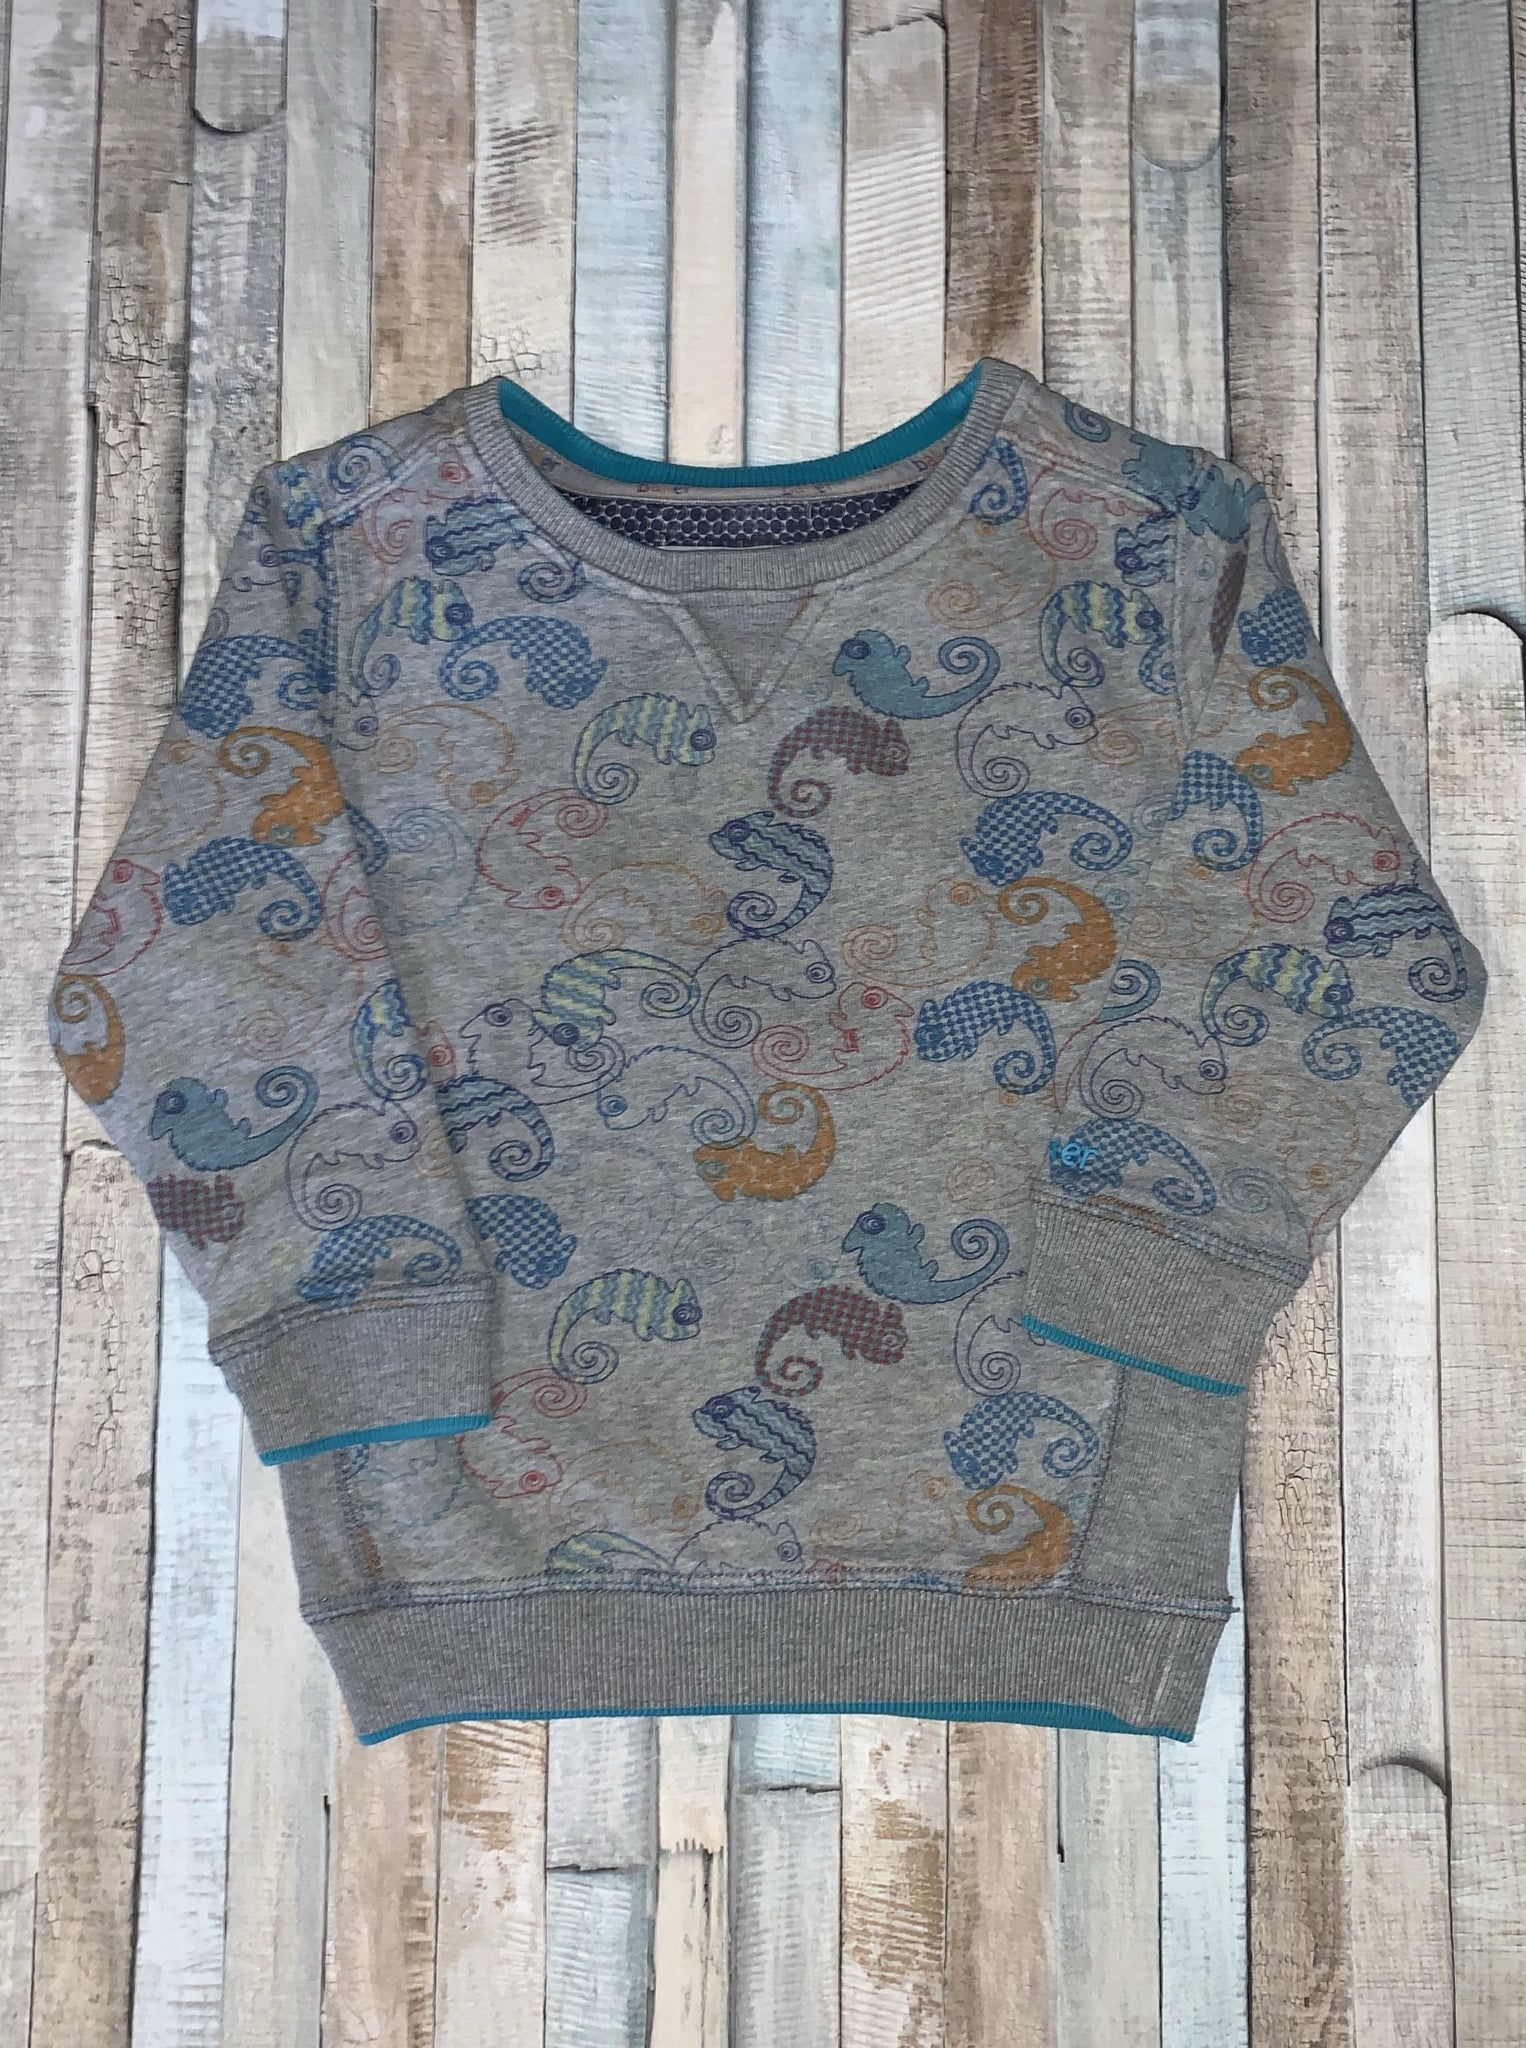 Ted Baker Chameleon Sweatshirt Grey 2-3 Years - Nippers Preloved children's clothing